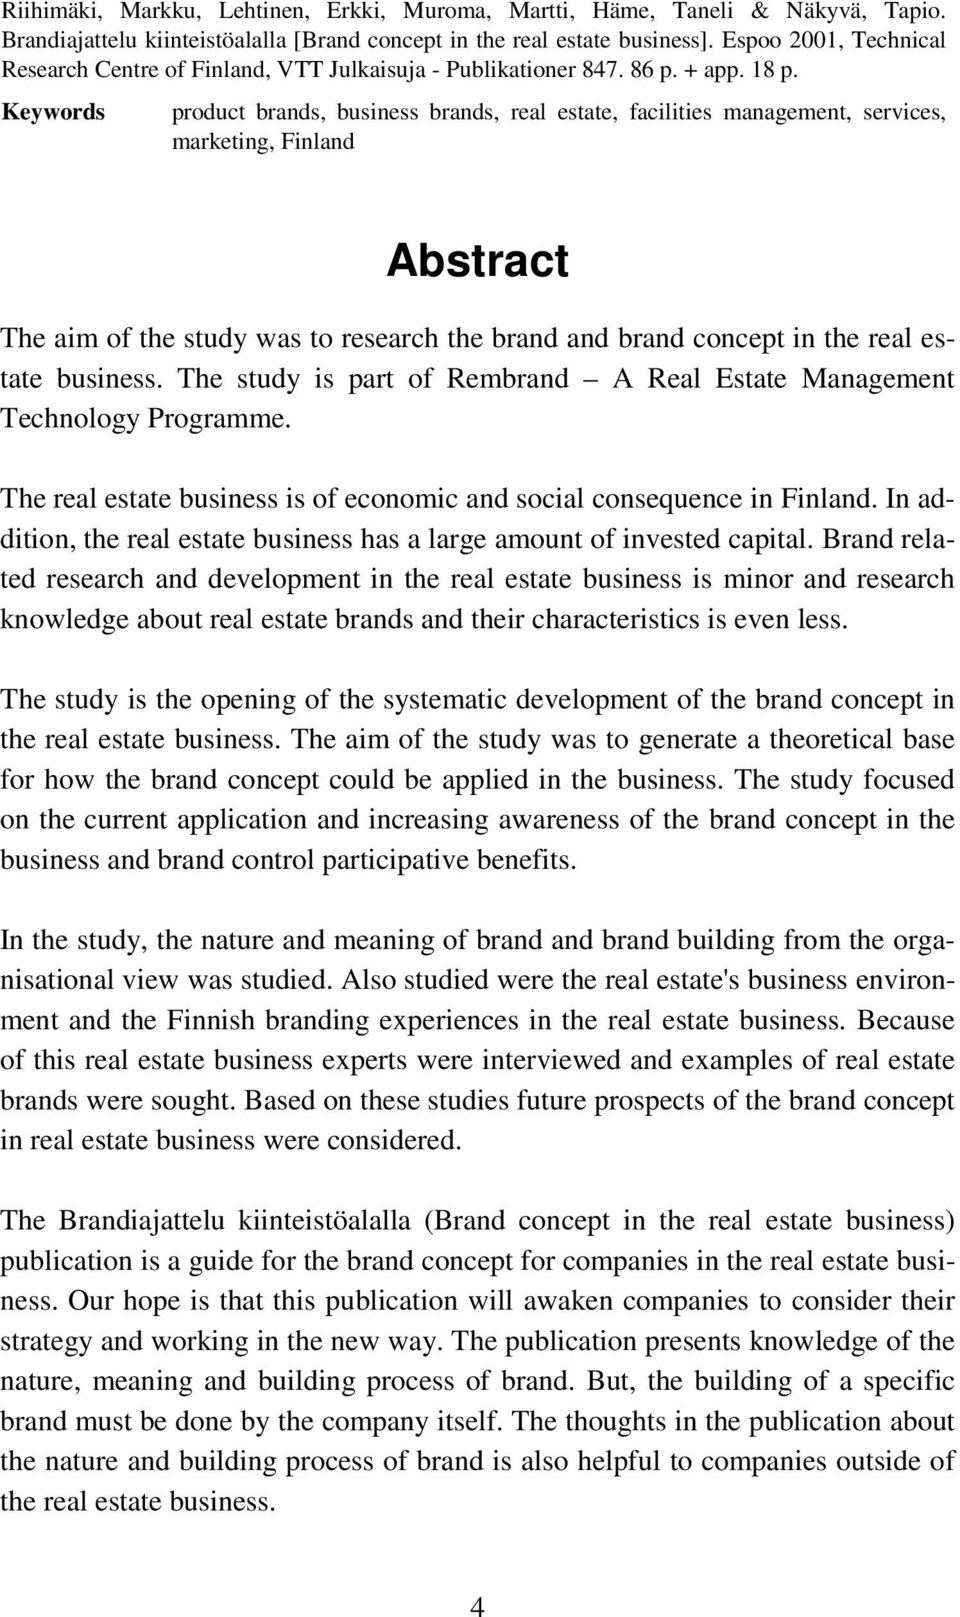 Keywords product brands, business brands, real estate, facilities management, services, marketing, Finland Abstract The aim of the study was to research the brand and brand concept in the real estate